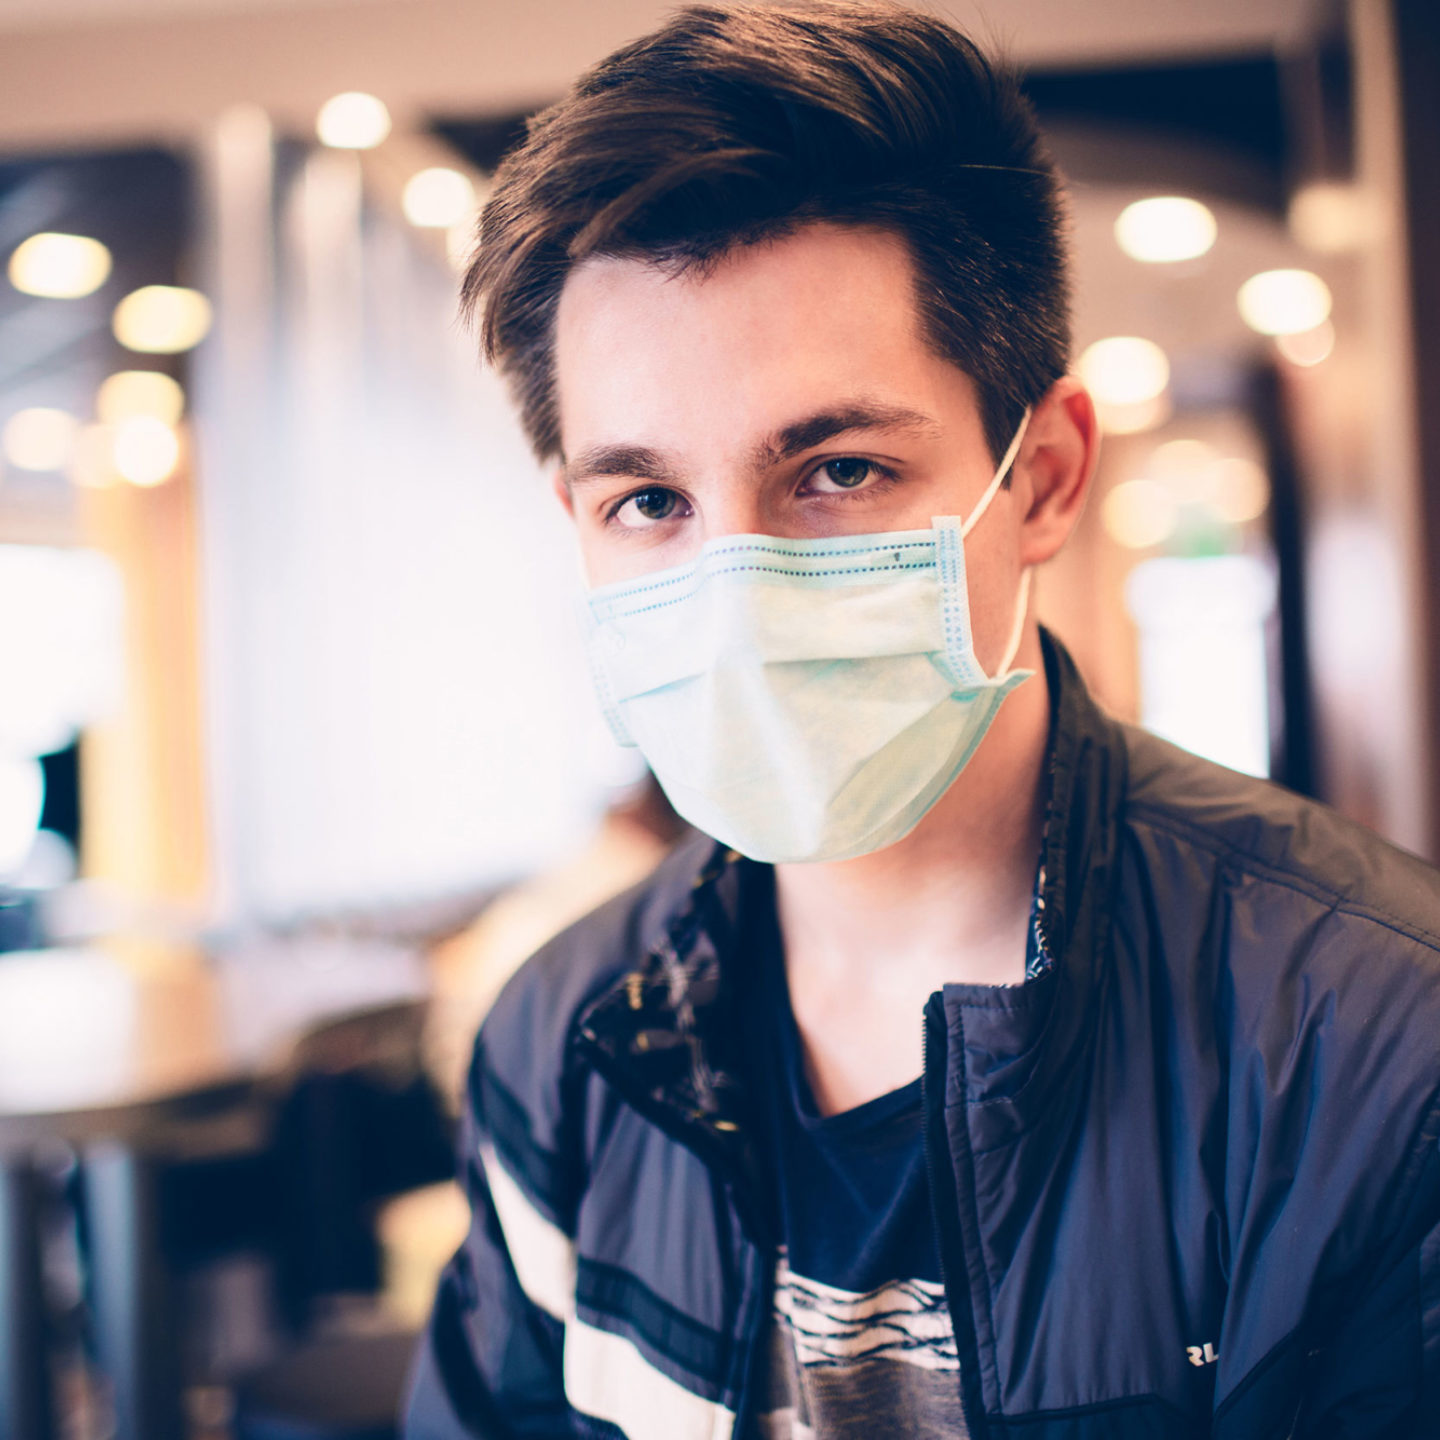 Male customer in a restaurant wearing a face mask